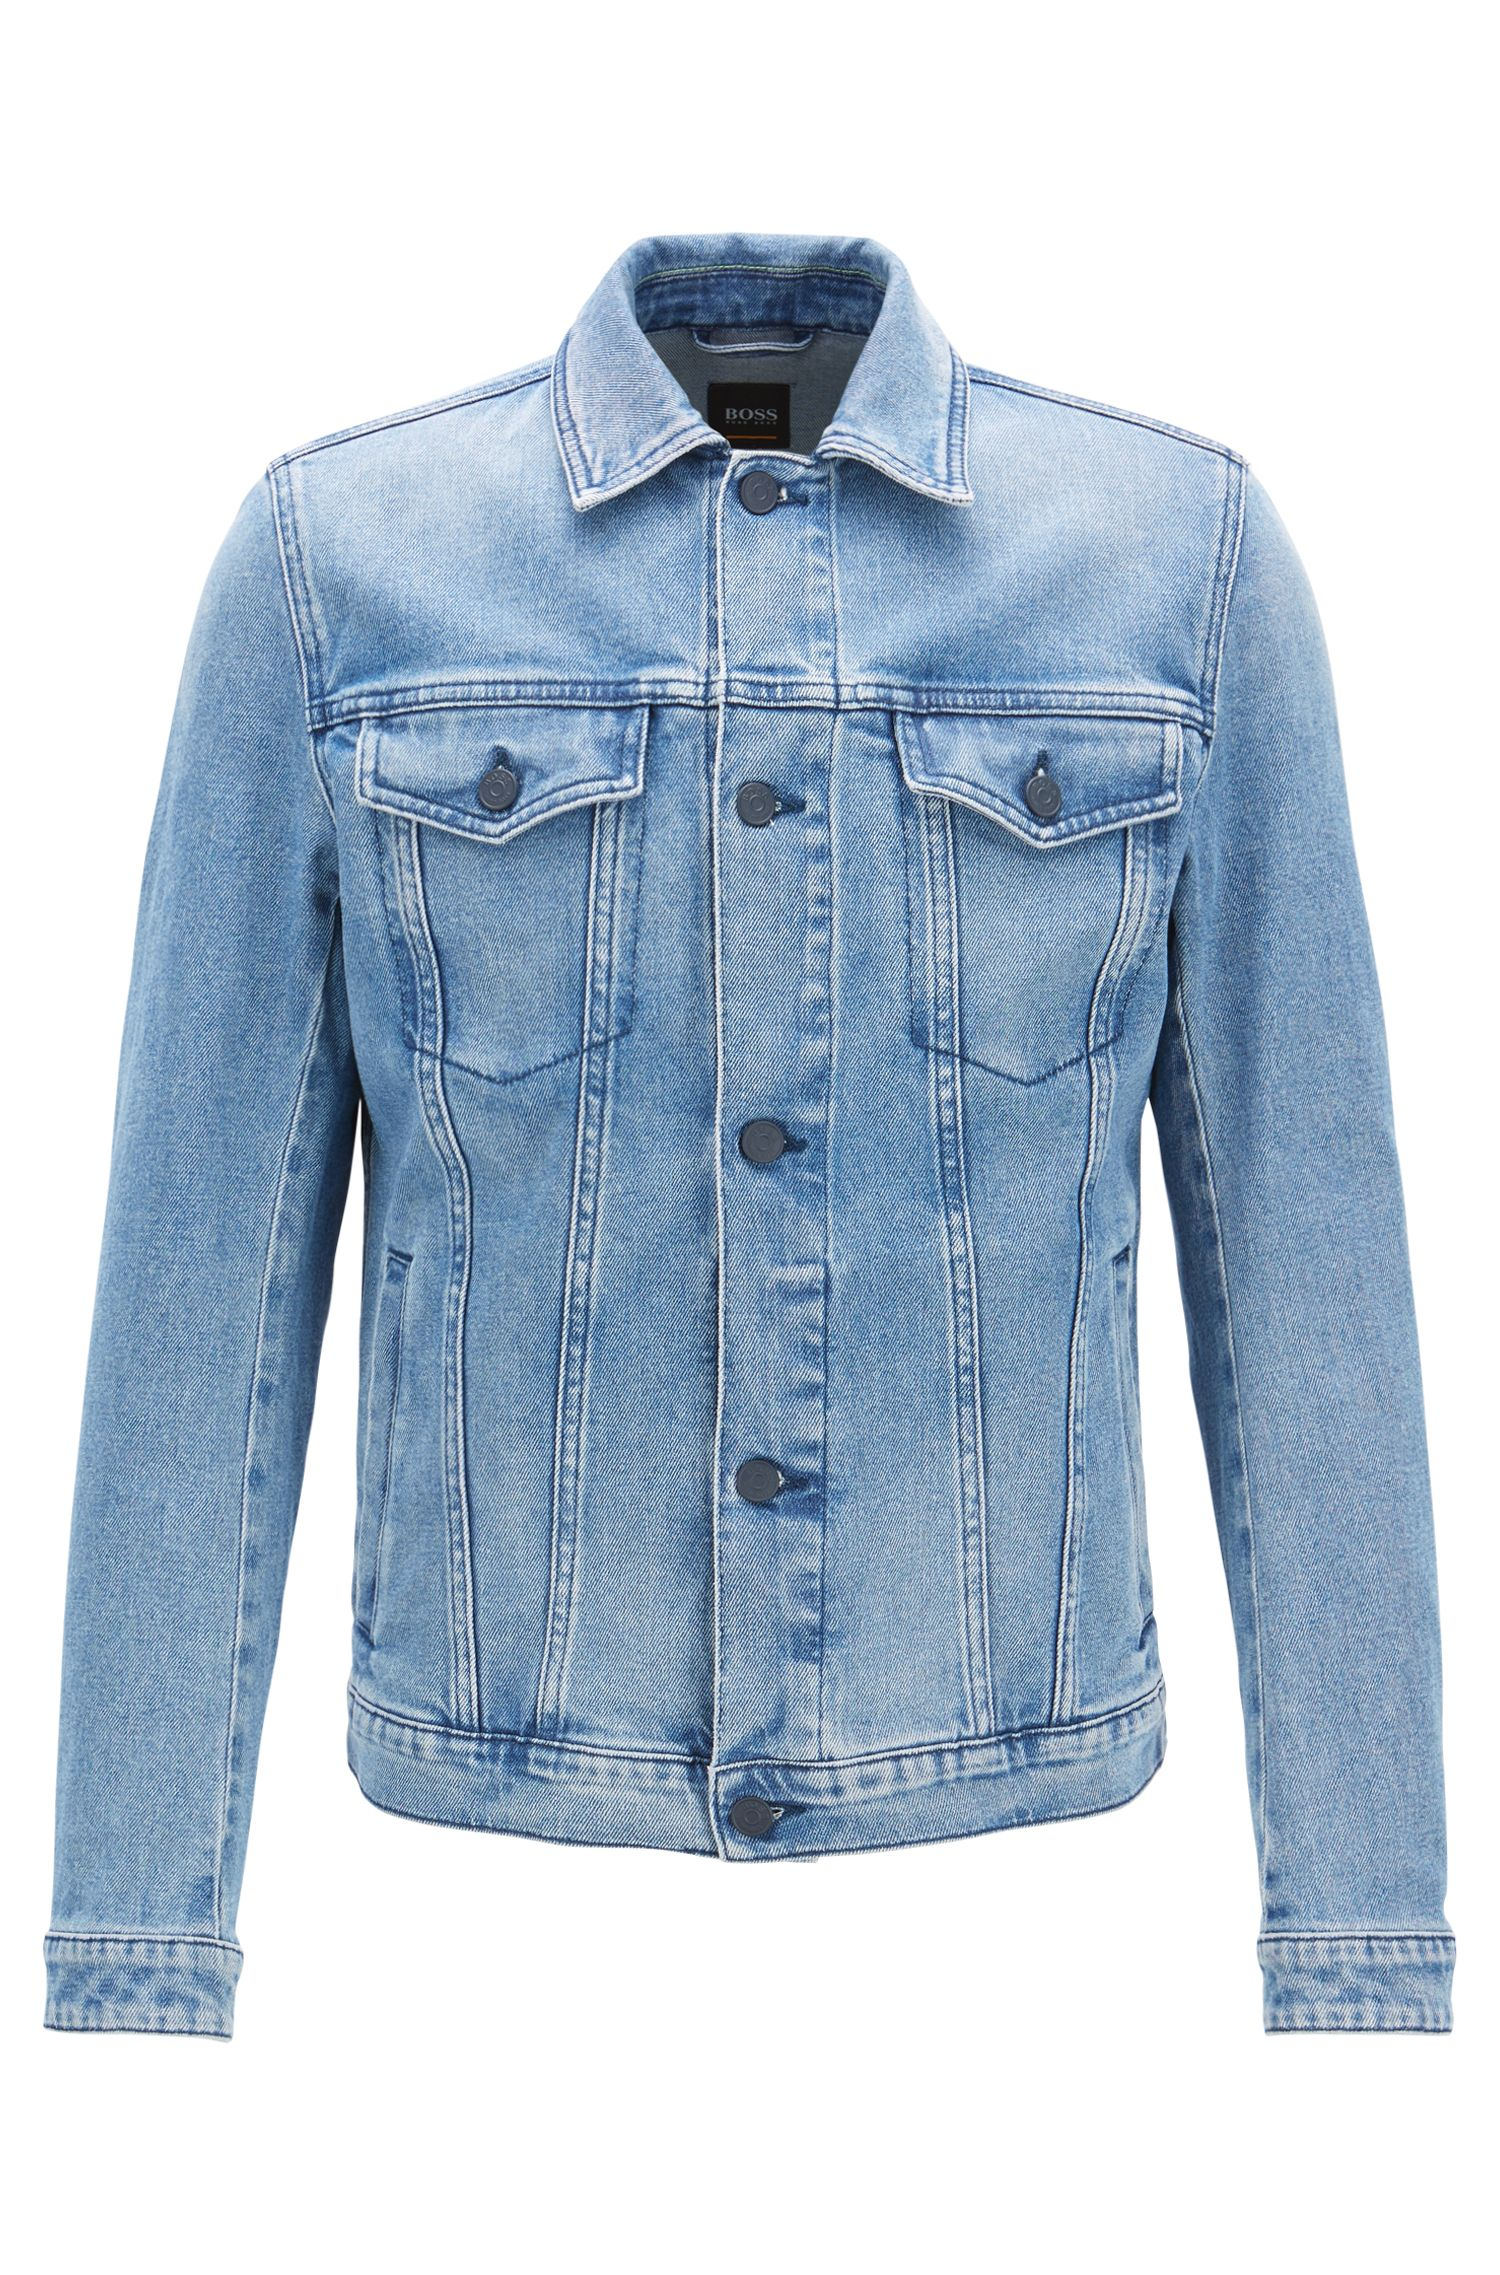 Regular-fit jacket in eco-friendly stretch denim, Blue